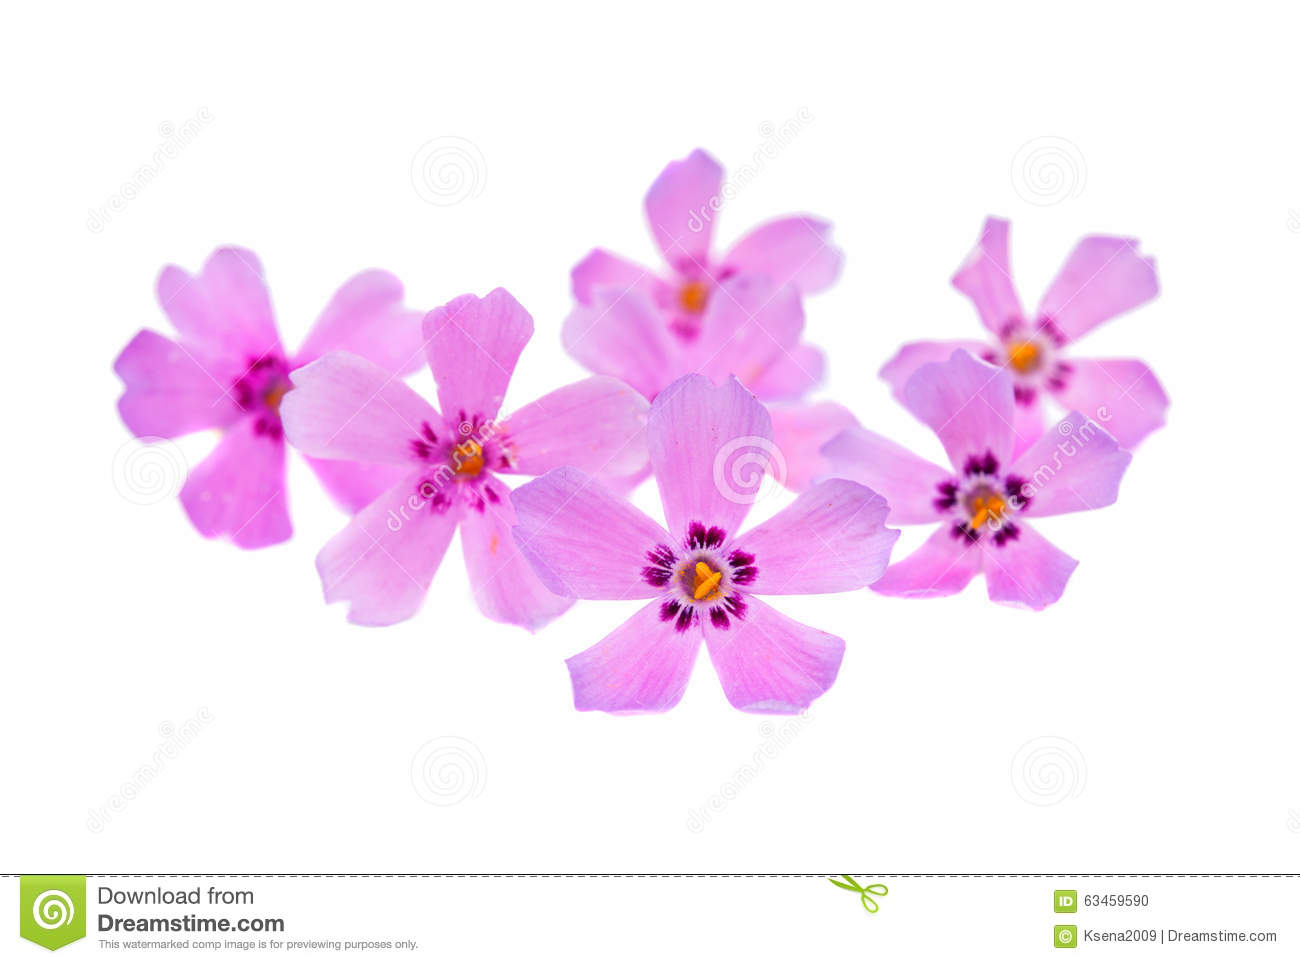 Small pink flowers stock photo image of perennial grass 63459590 download small pink flowers stock photo image of perennial grass 63459590 mightylinksfo